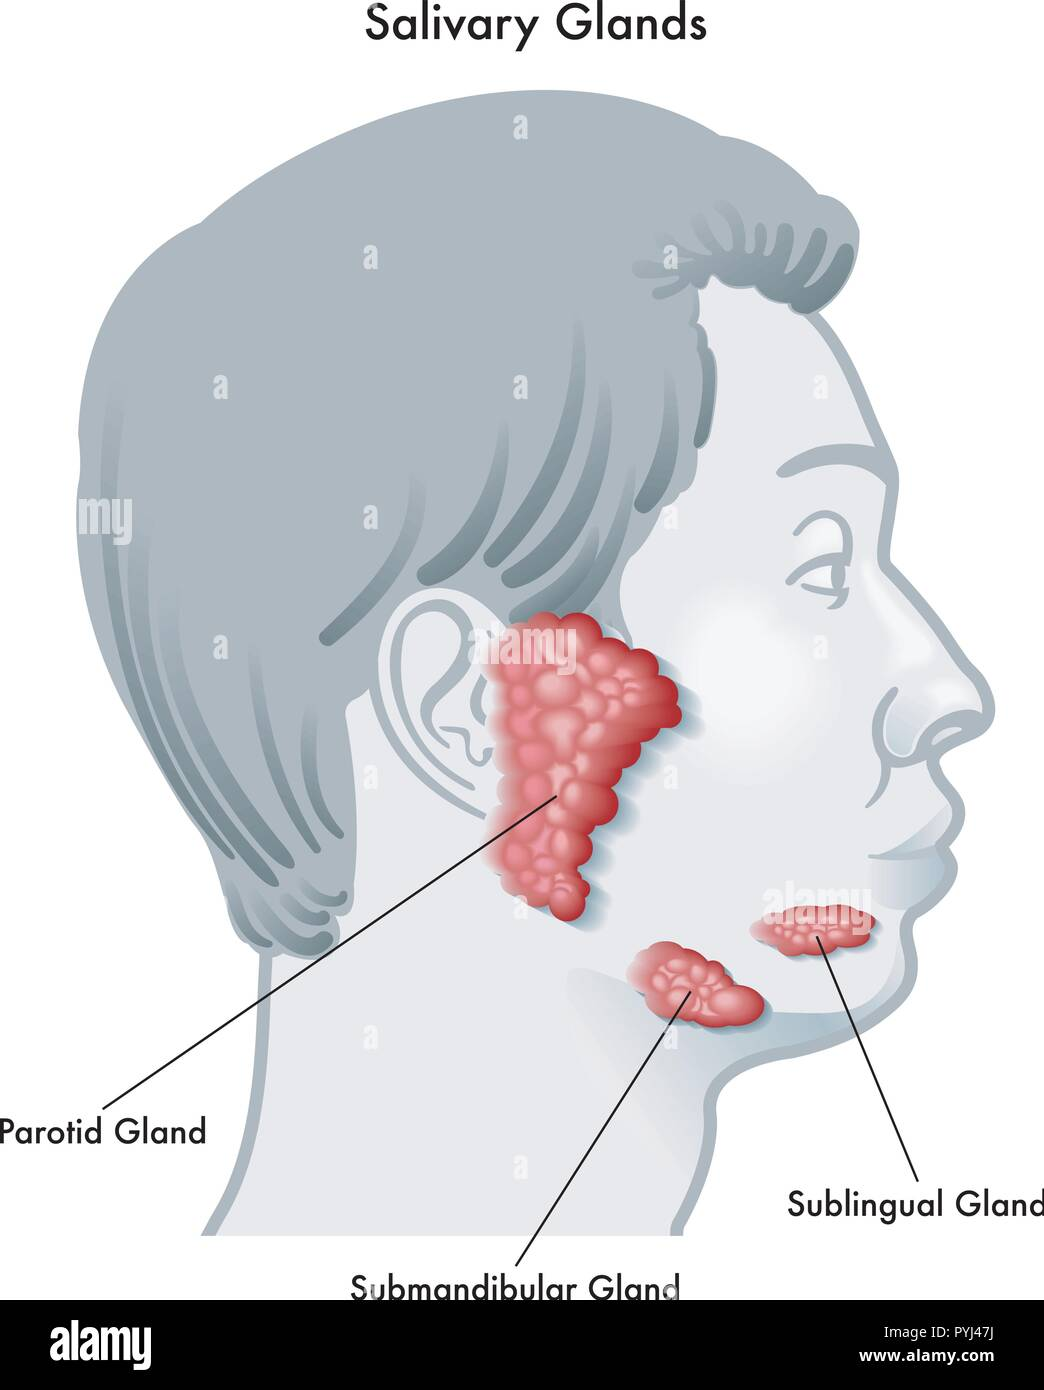 hight resolution of vector illustration diagram of a face in profile noting the salivary glands and their locations